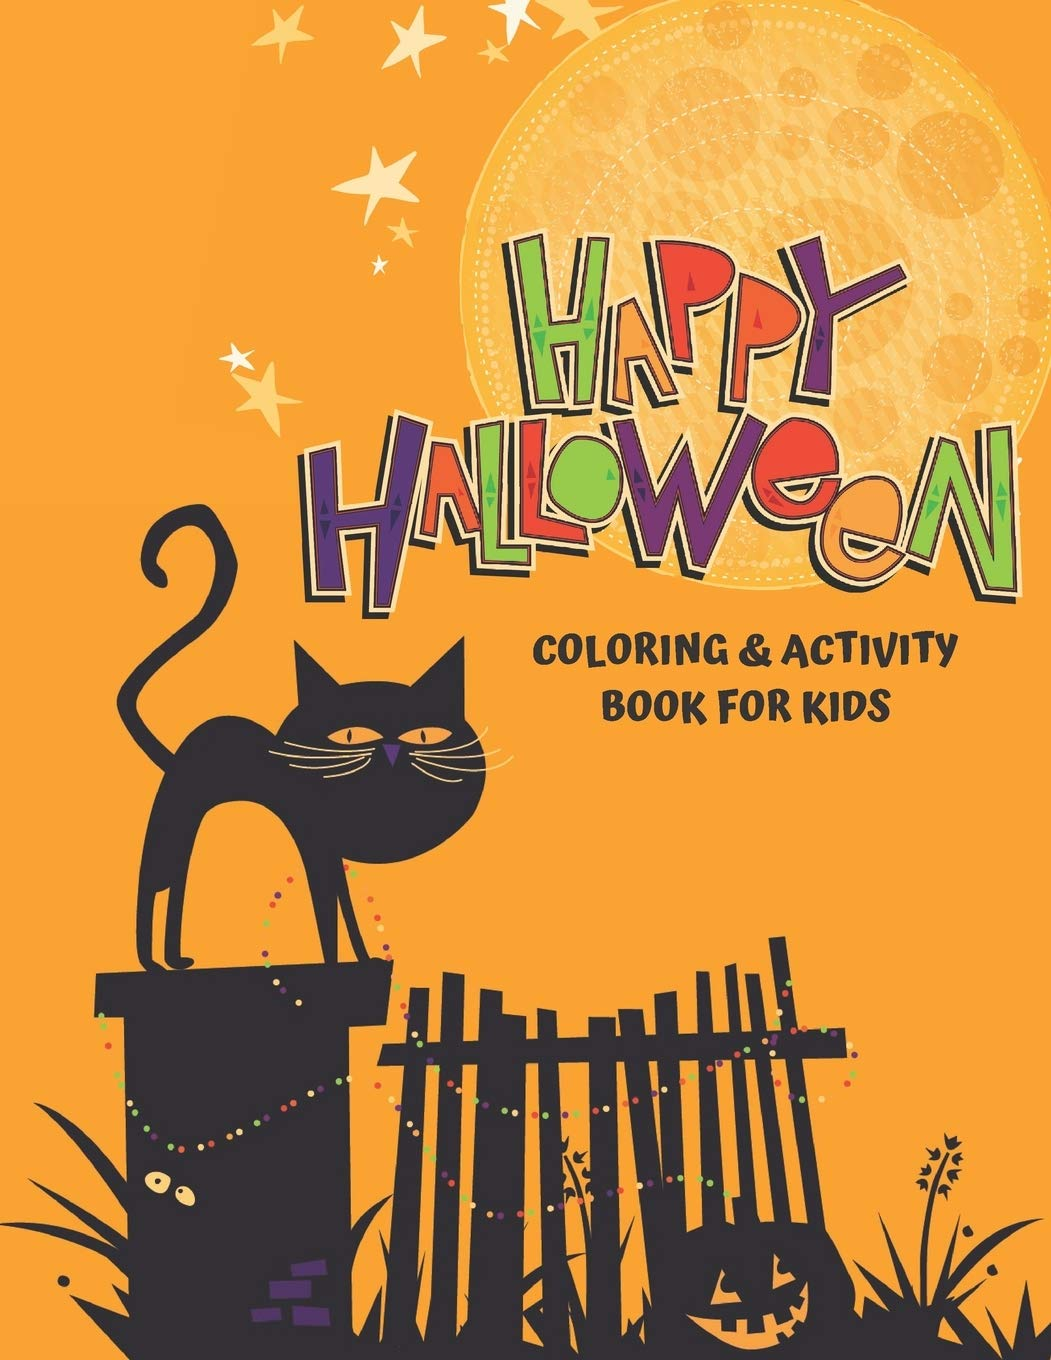 Happy Halloween Coloring And Activity Book For Kids Large Print Coloring Pages And Puzzles Crossword Word Find And More Publishing Sky Island 9781687220165 Amazon Com Books